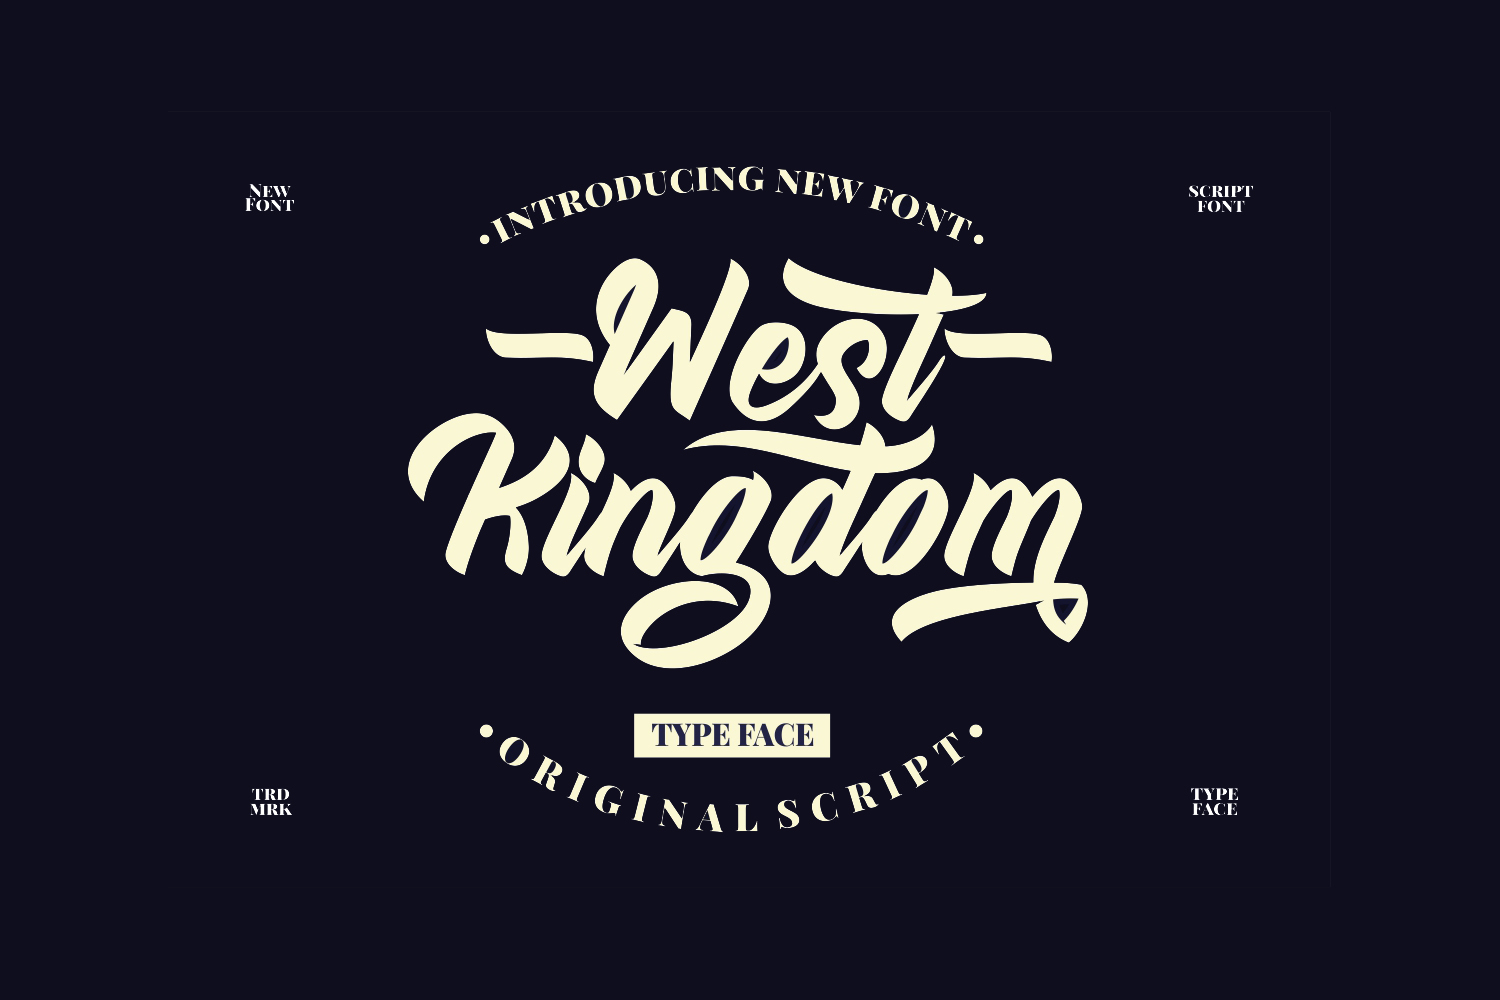 West Kingdom Free Font